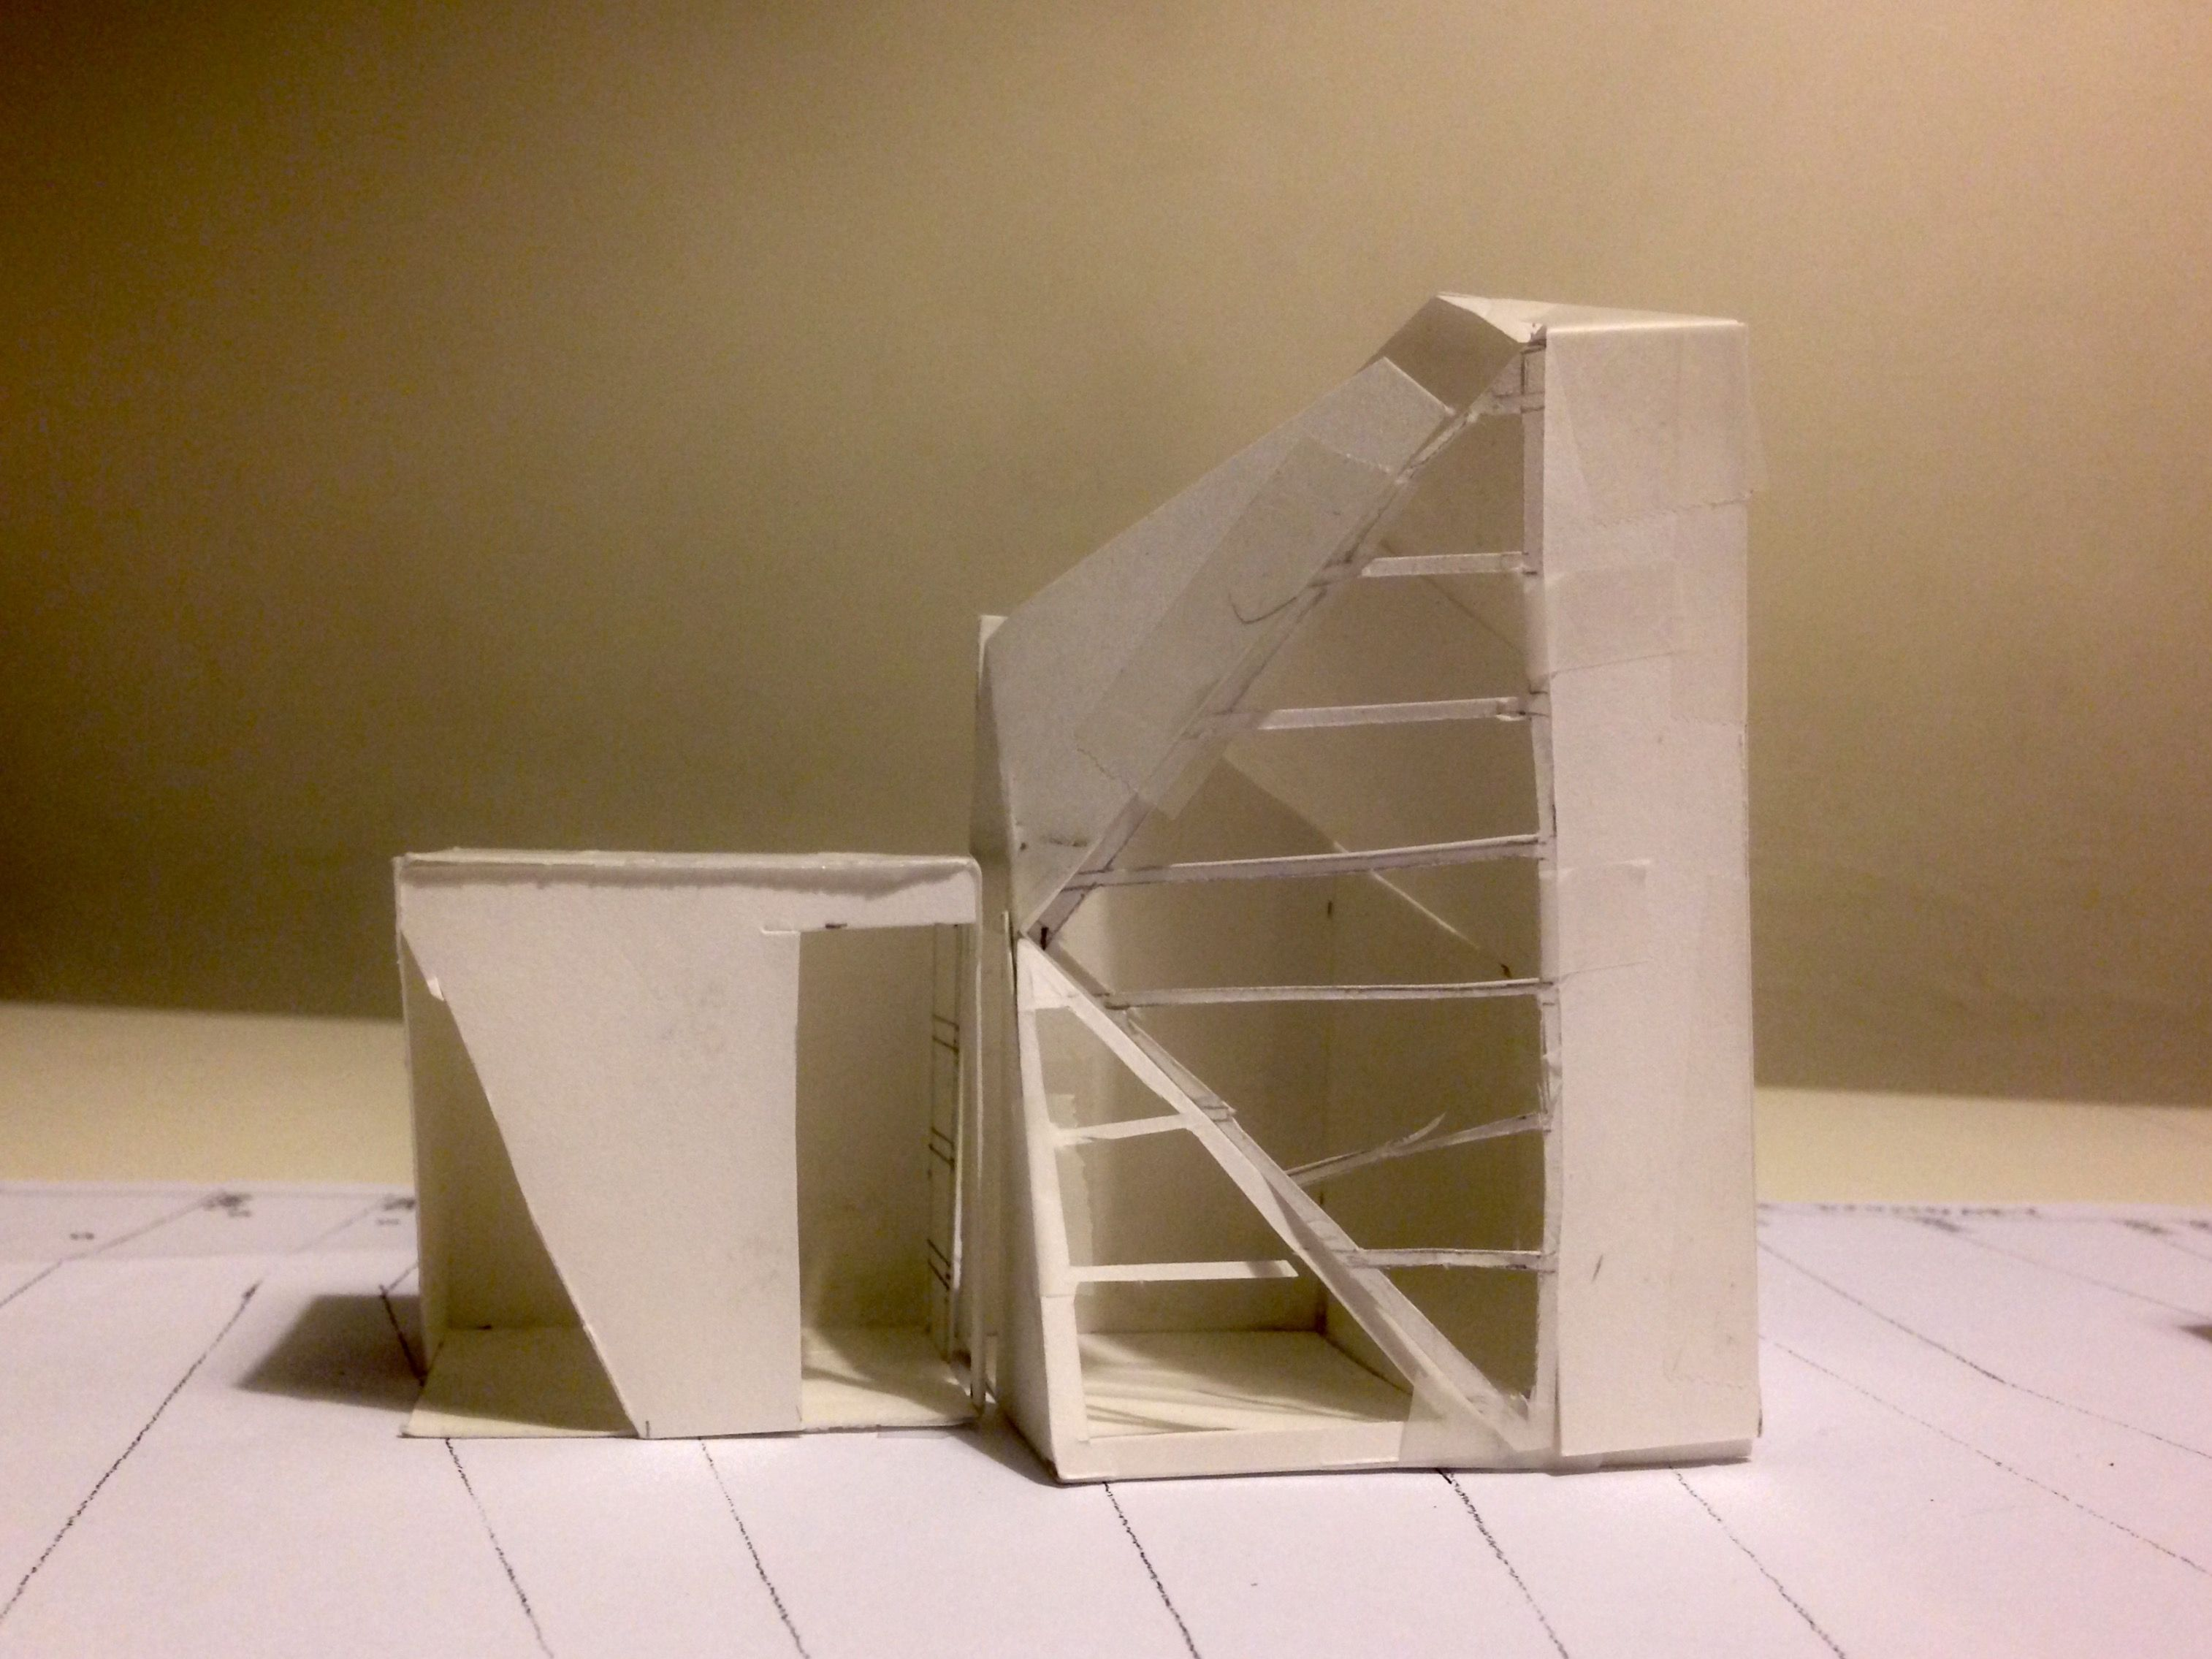 UniSA Interior Architecture Design Studio 1 Assignment 3 Place Sketch Model Space